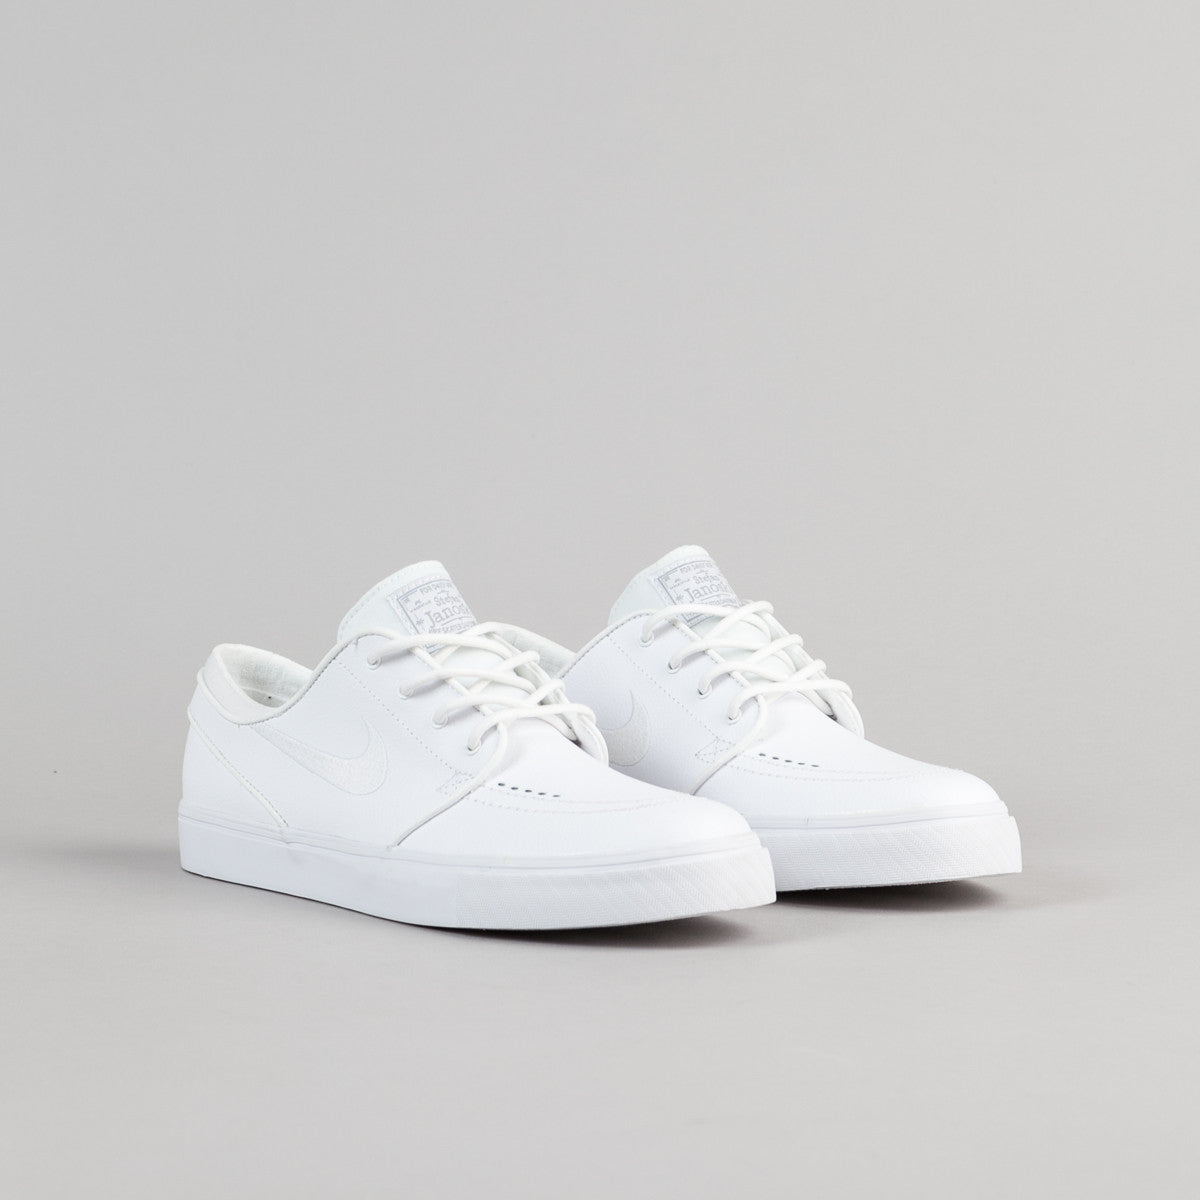 nike sb stefan janoski leather shoes white white